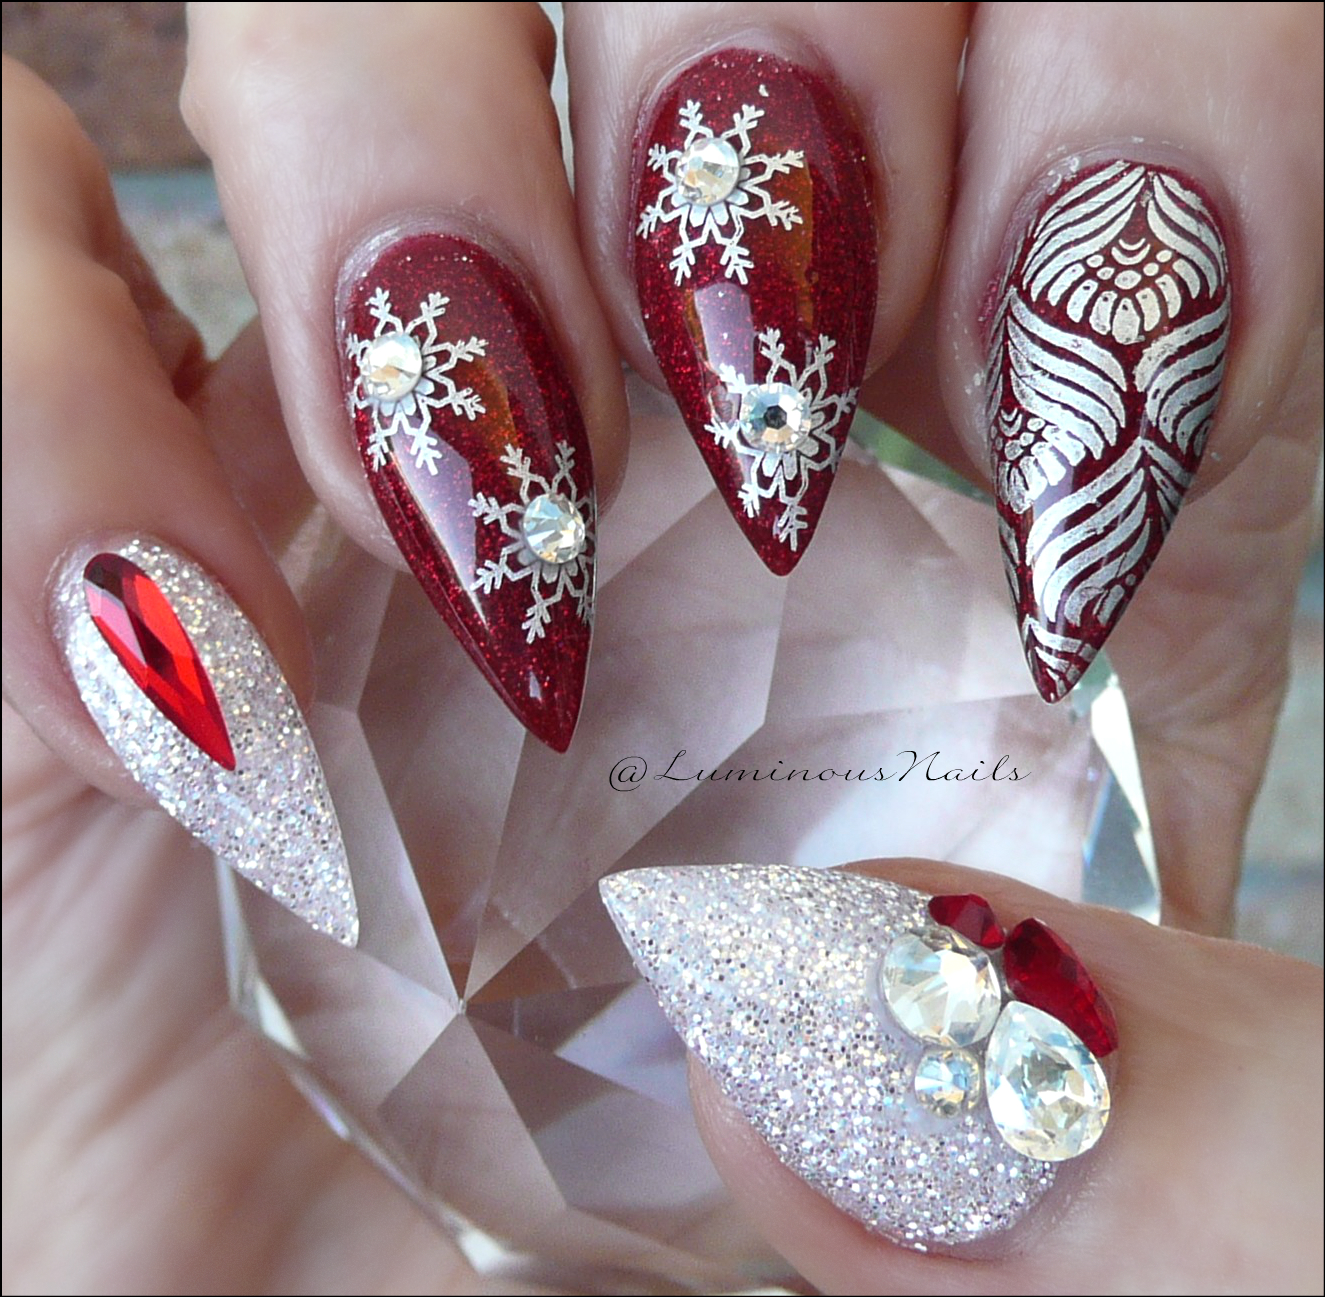 Luminous Nails Red, White \u0026 Silver Christmas Nails